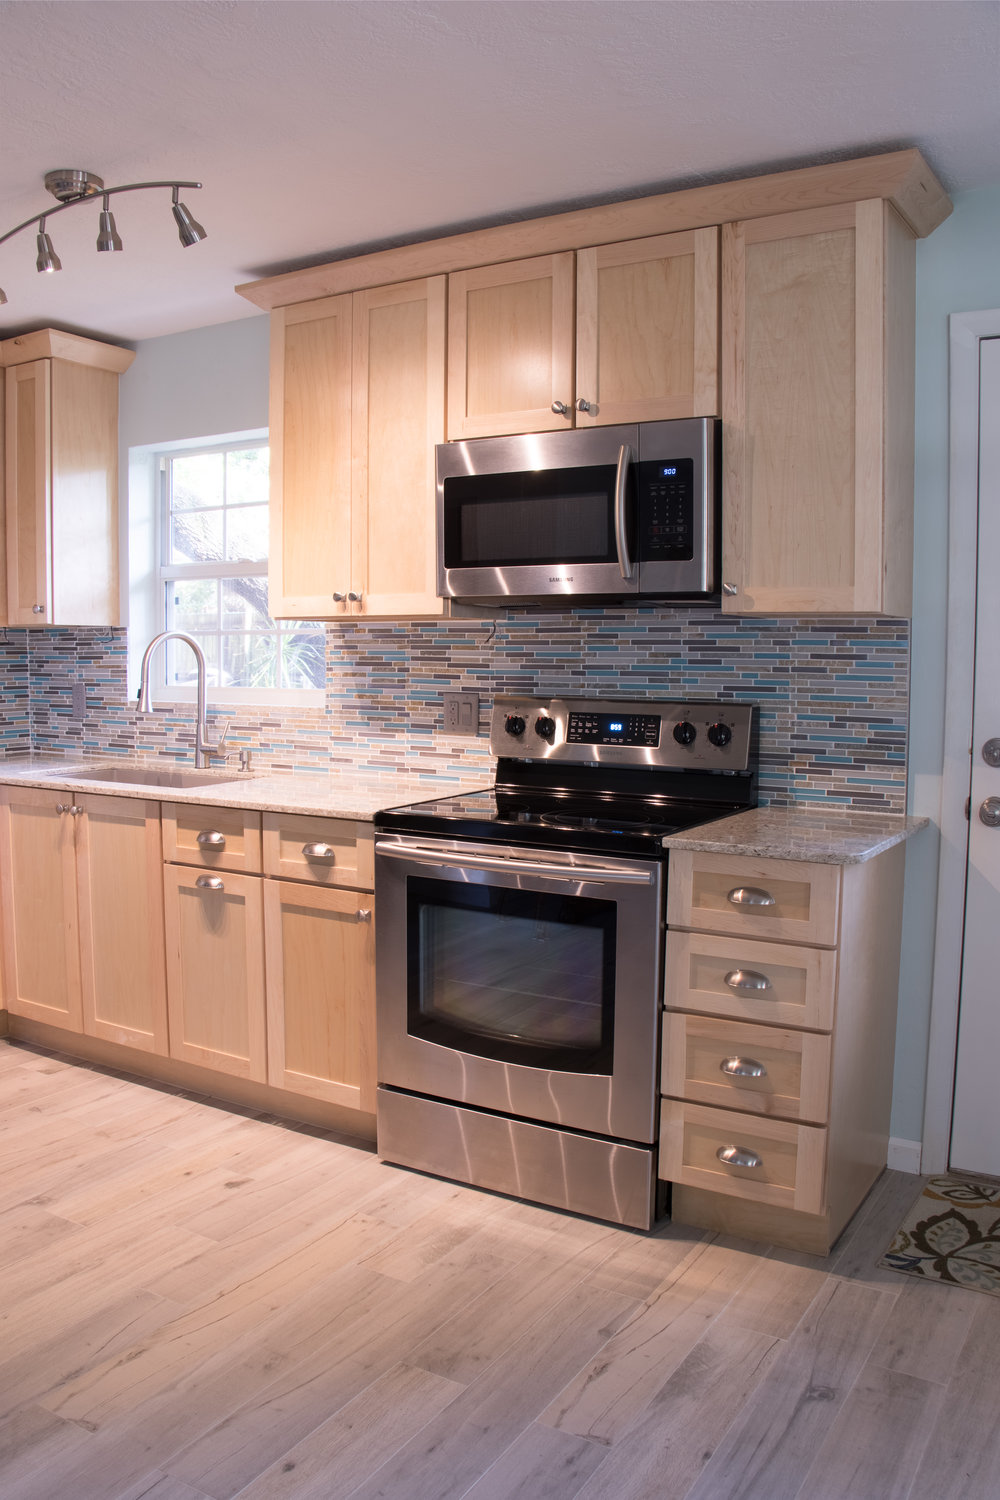 NOTI KITCHEN & BATH74.jpg